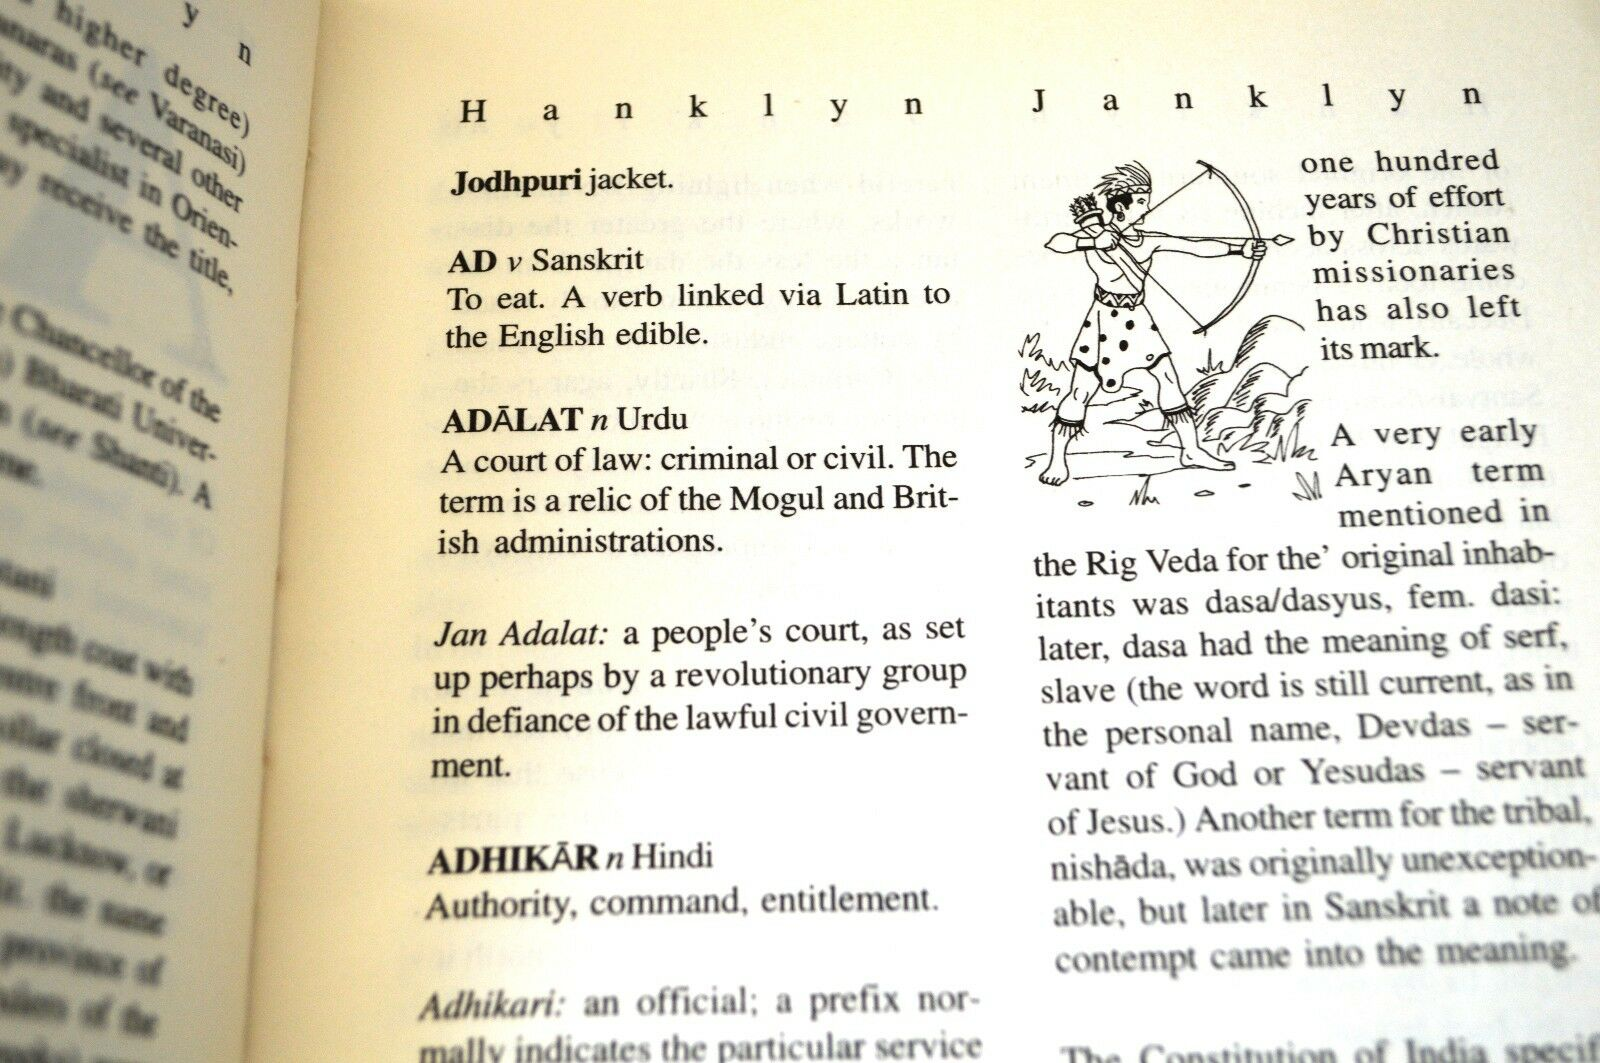 Hanklyn-Janklin : A Rumble-Tumble Guide to Some Words, Customs and Quiddities  Indian and Indo-British by Nigel B. Hankin (2003, Paperback)   eBay